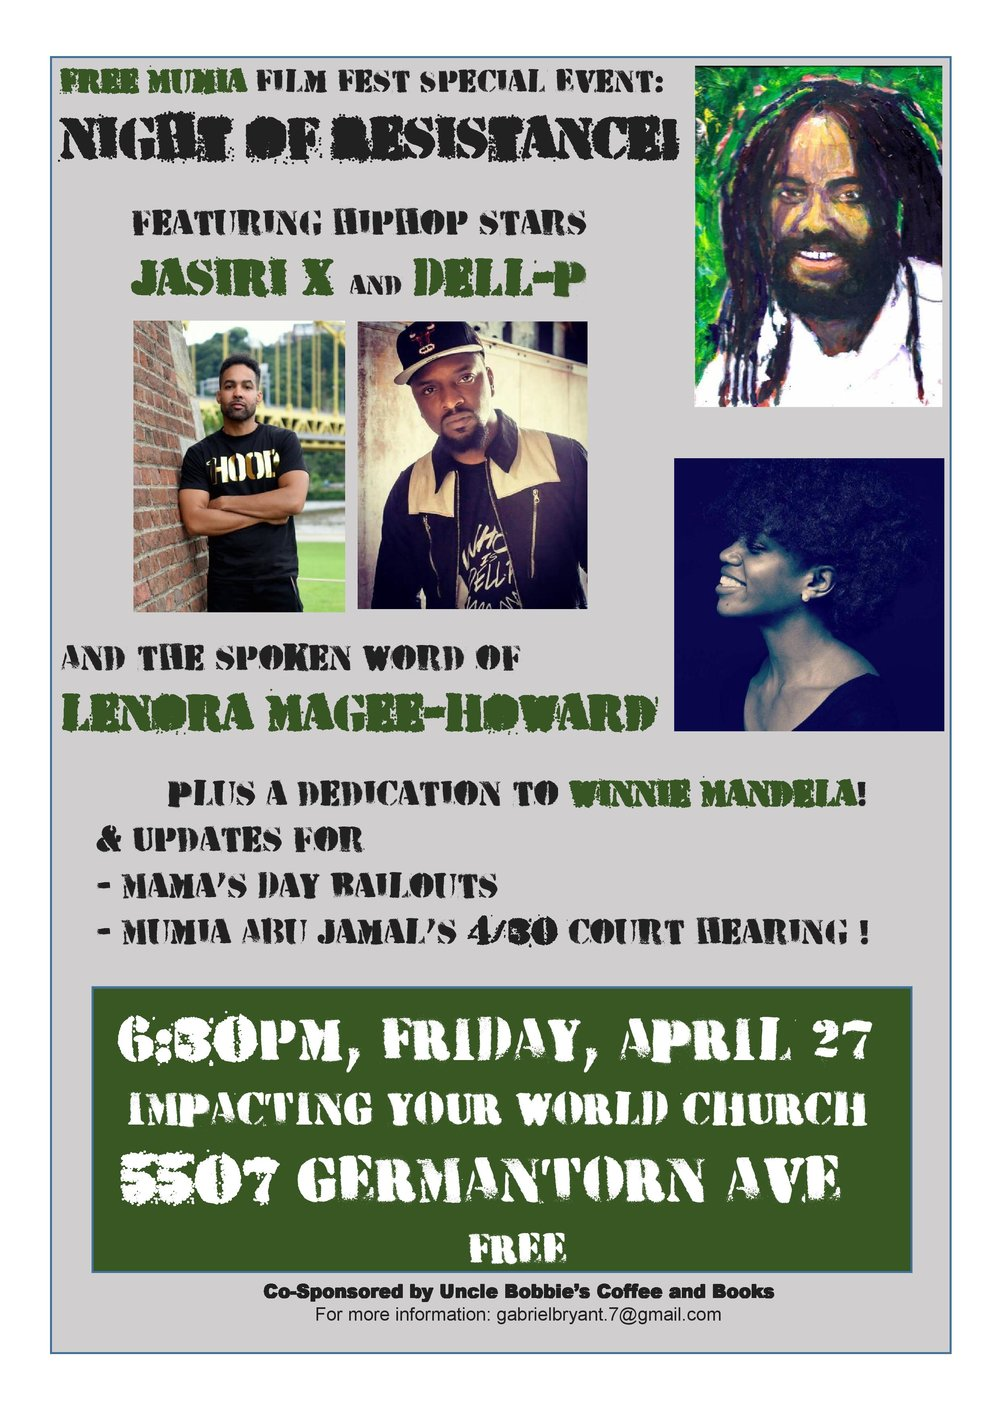 mumia night of resistance flier-page-001.jpg